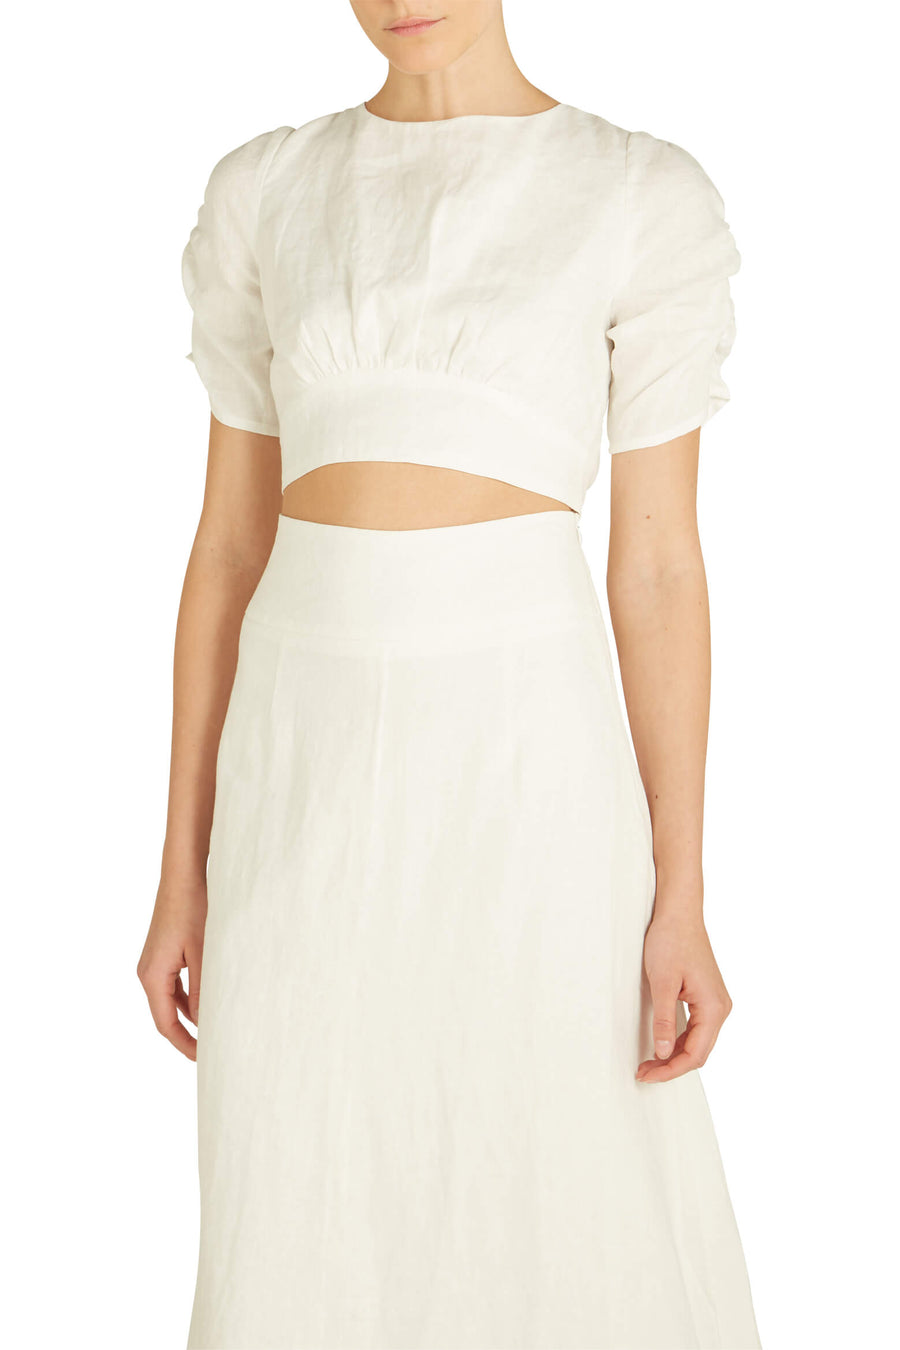 Hansen & Gretel Maddy Top in white from The New Trend